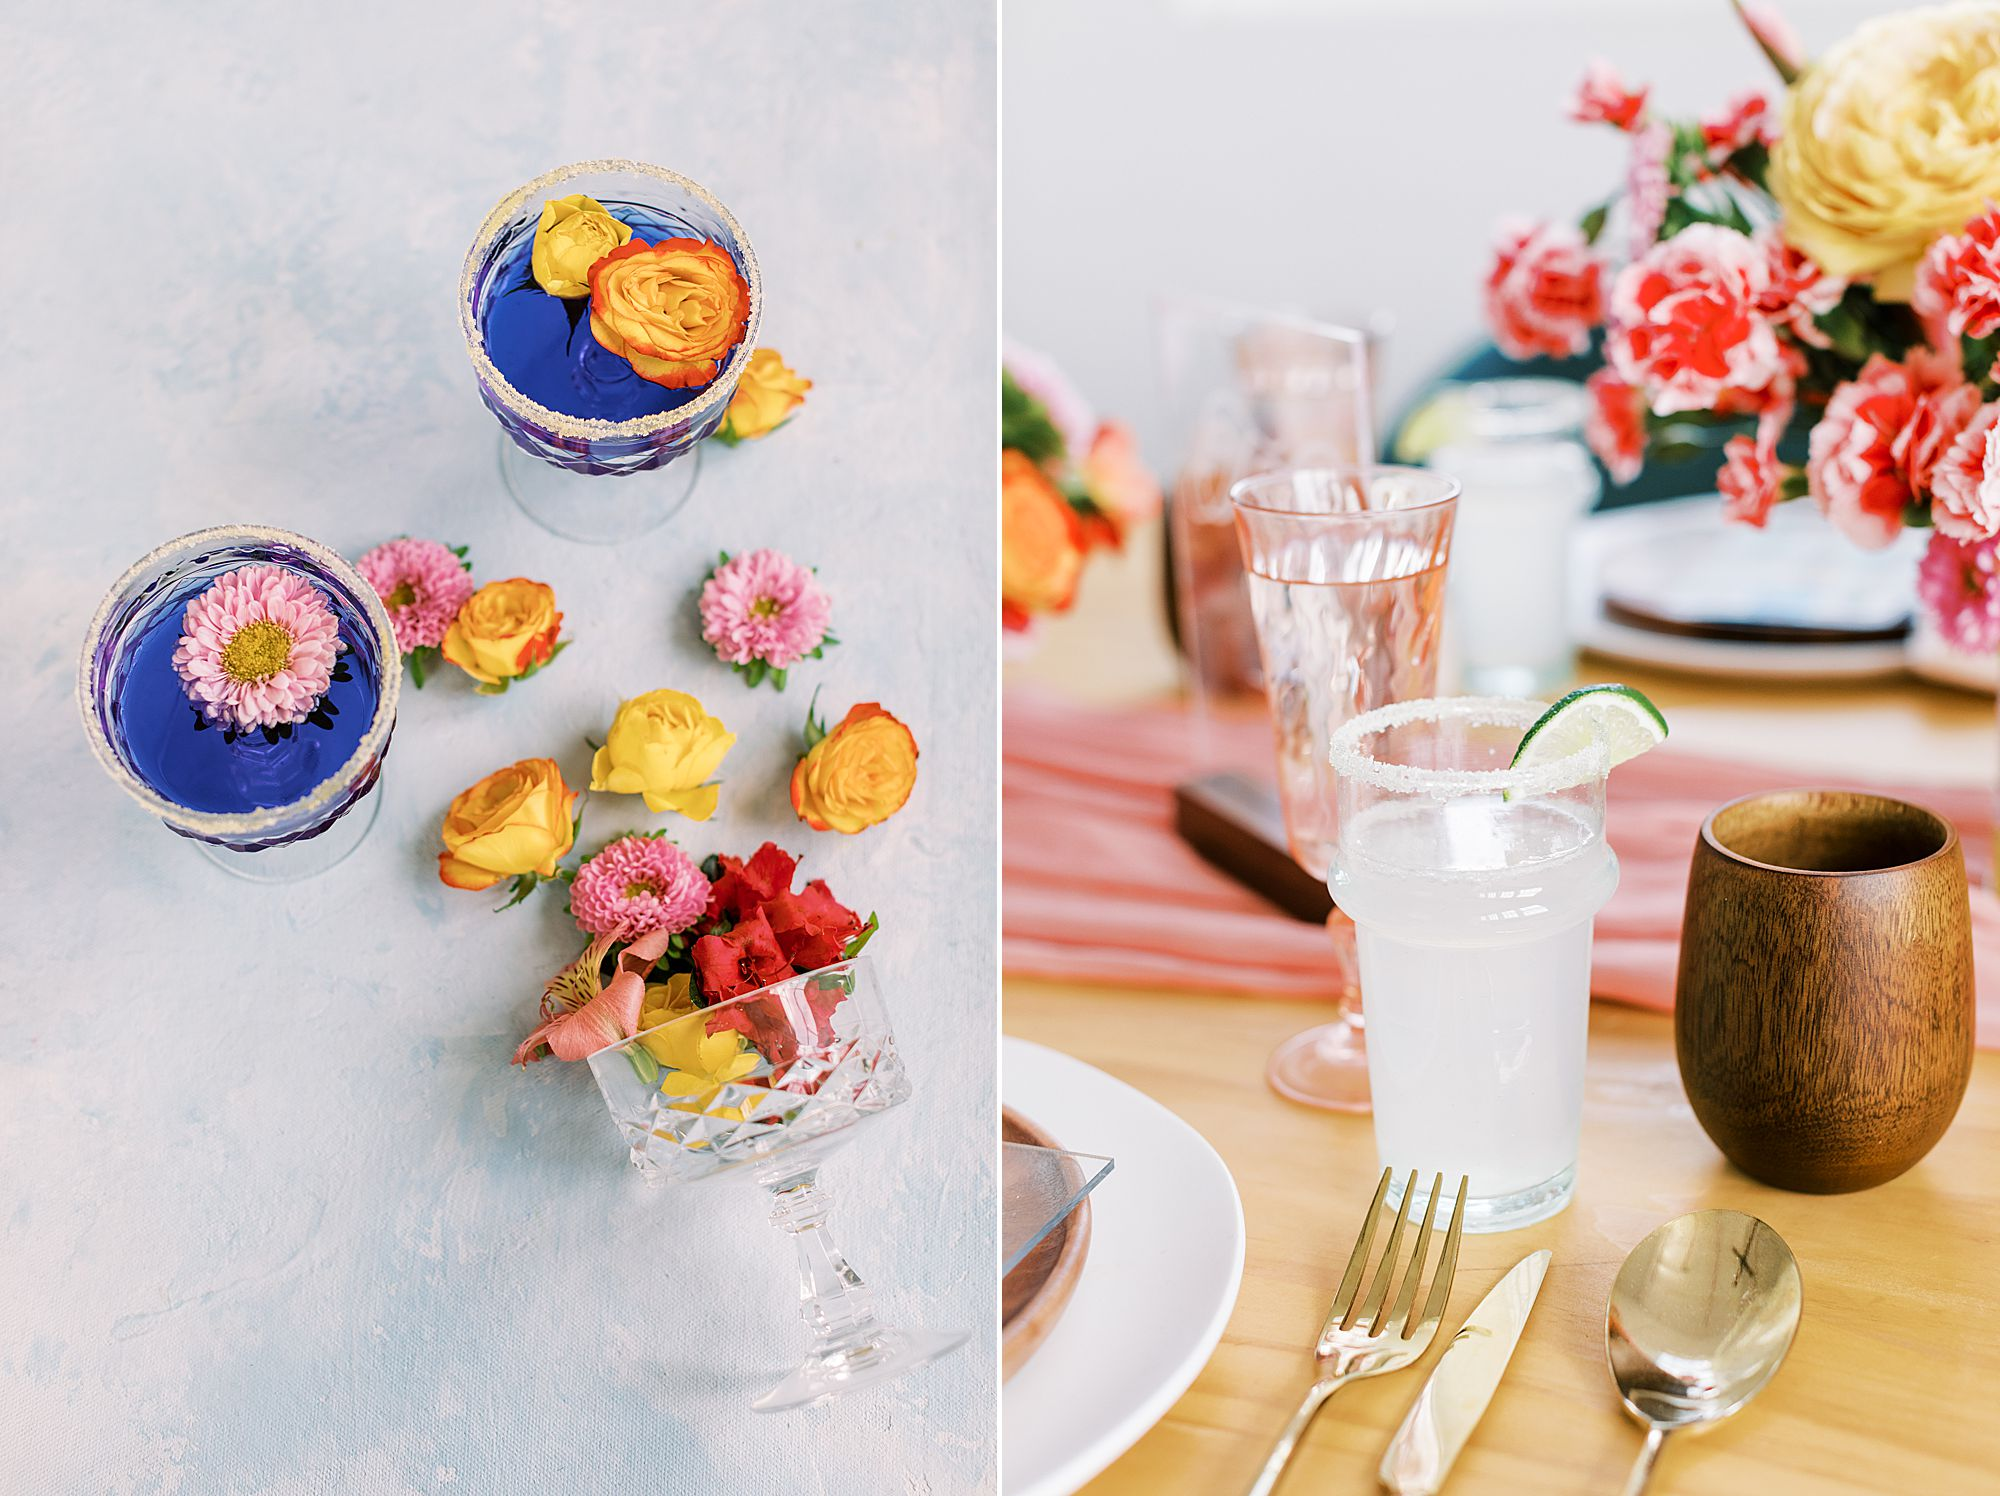 Cinco De Mayo Inspiration for Your FIesta - Party Crush Studio and Ashley Baumgartner_0036.jpg